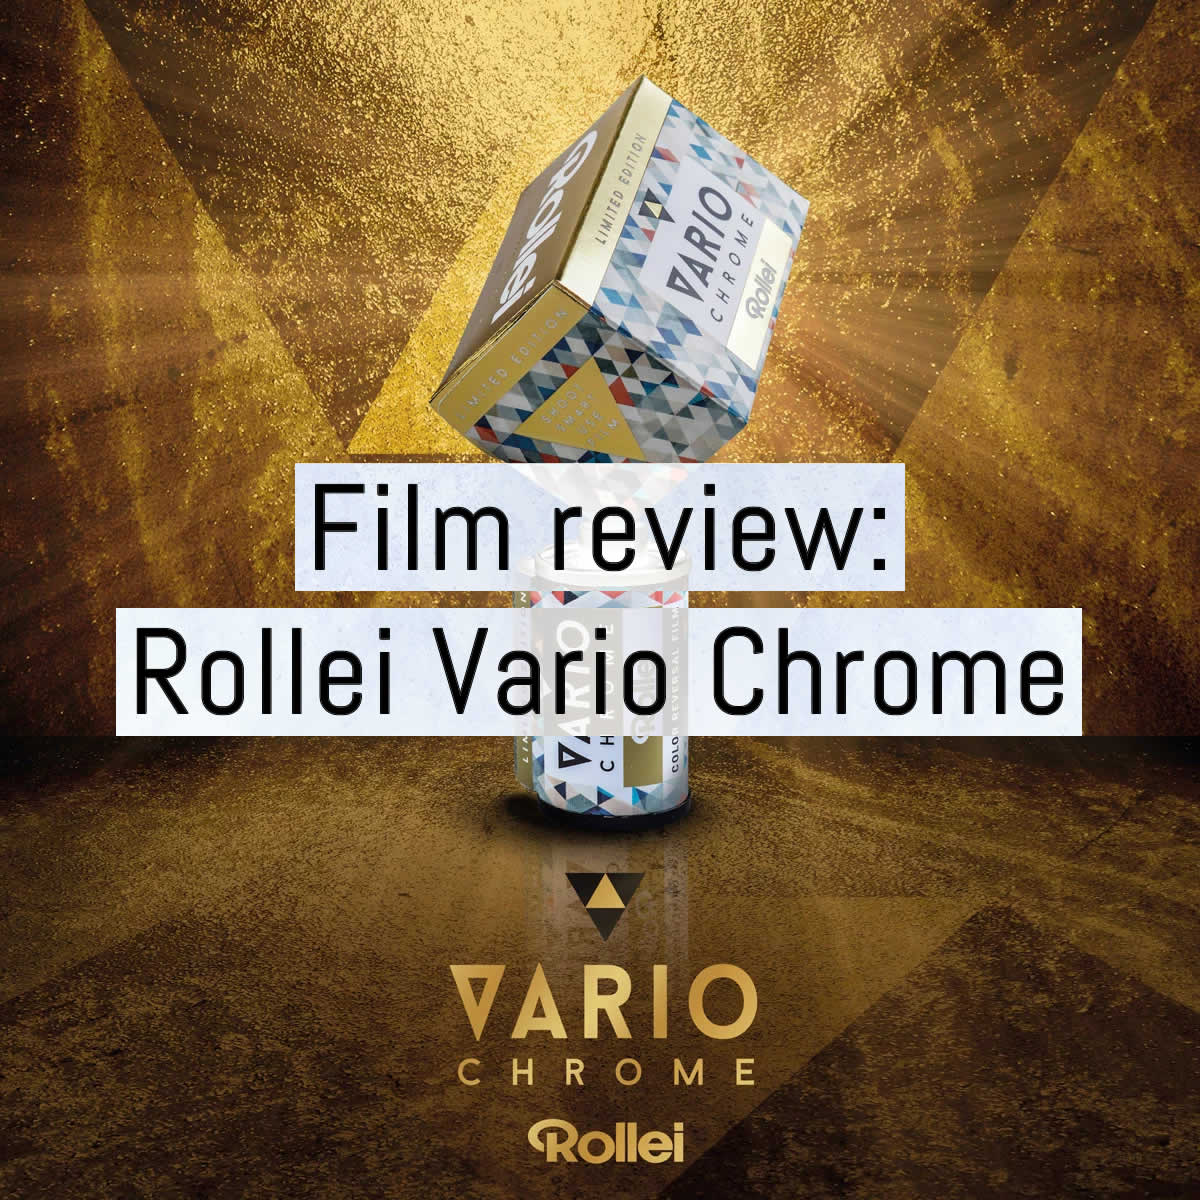 Film review: Rollei Vario Chrome color slide film - 35mm format